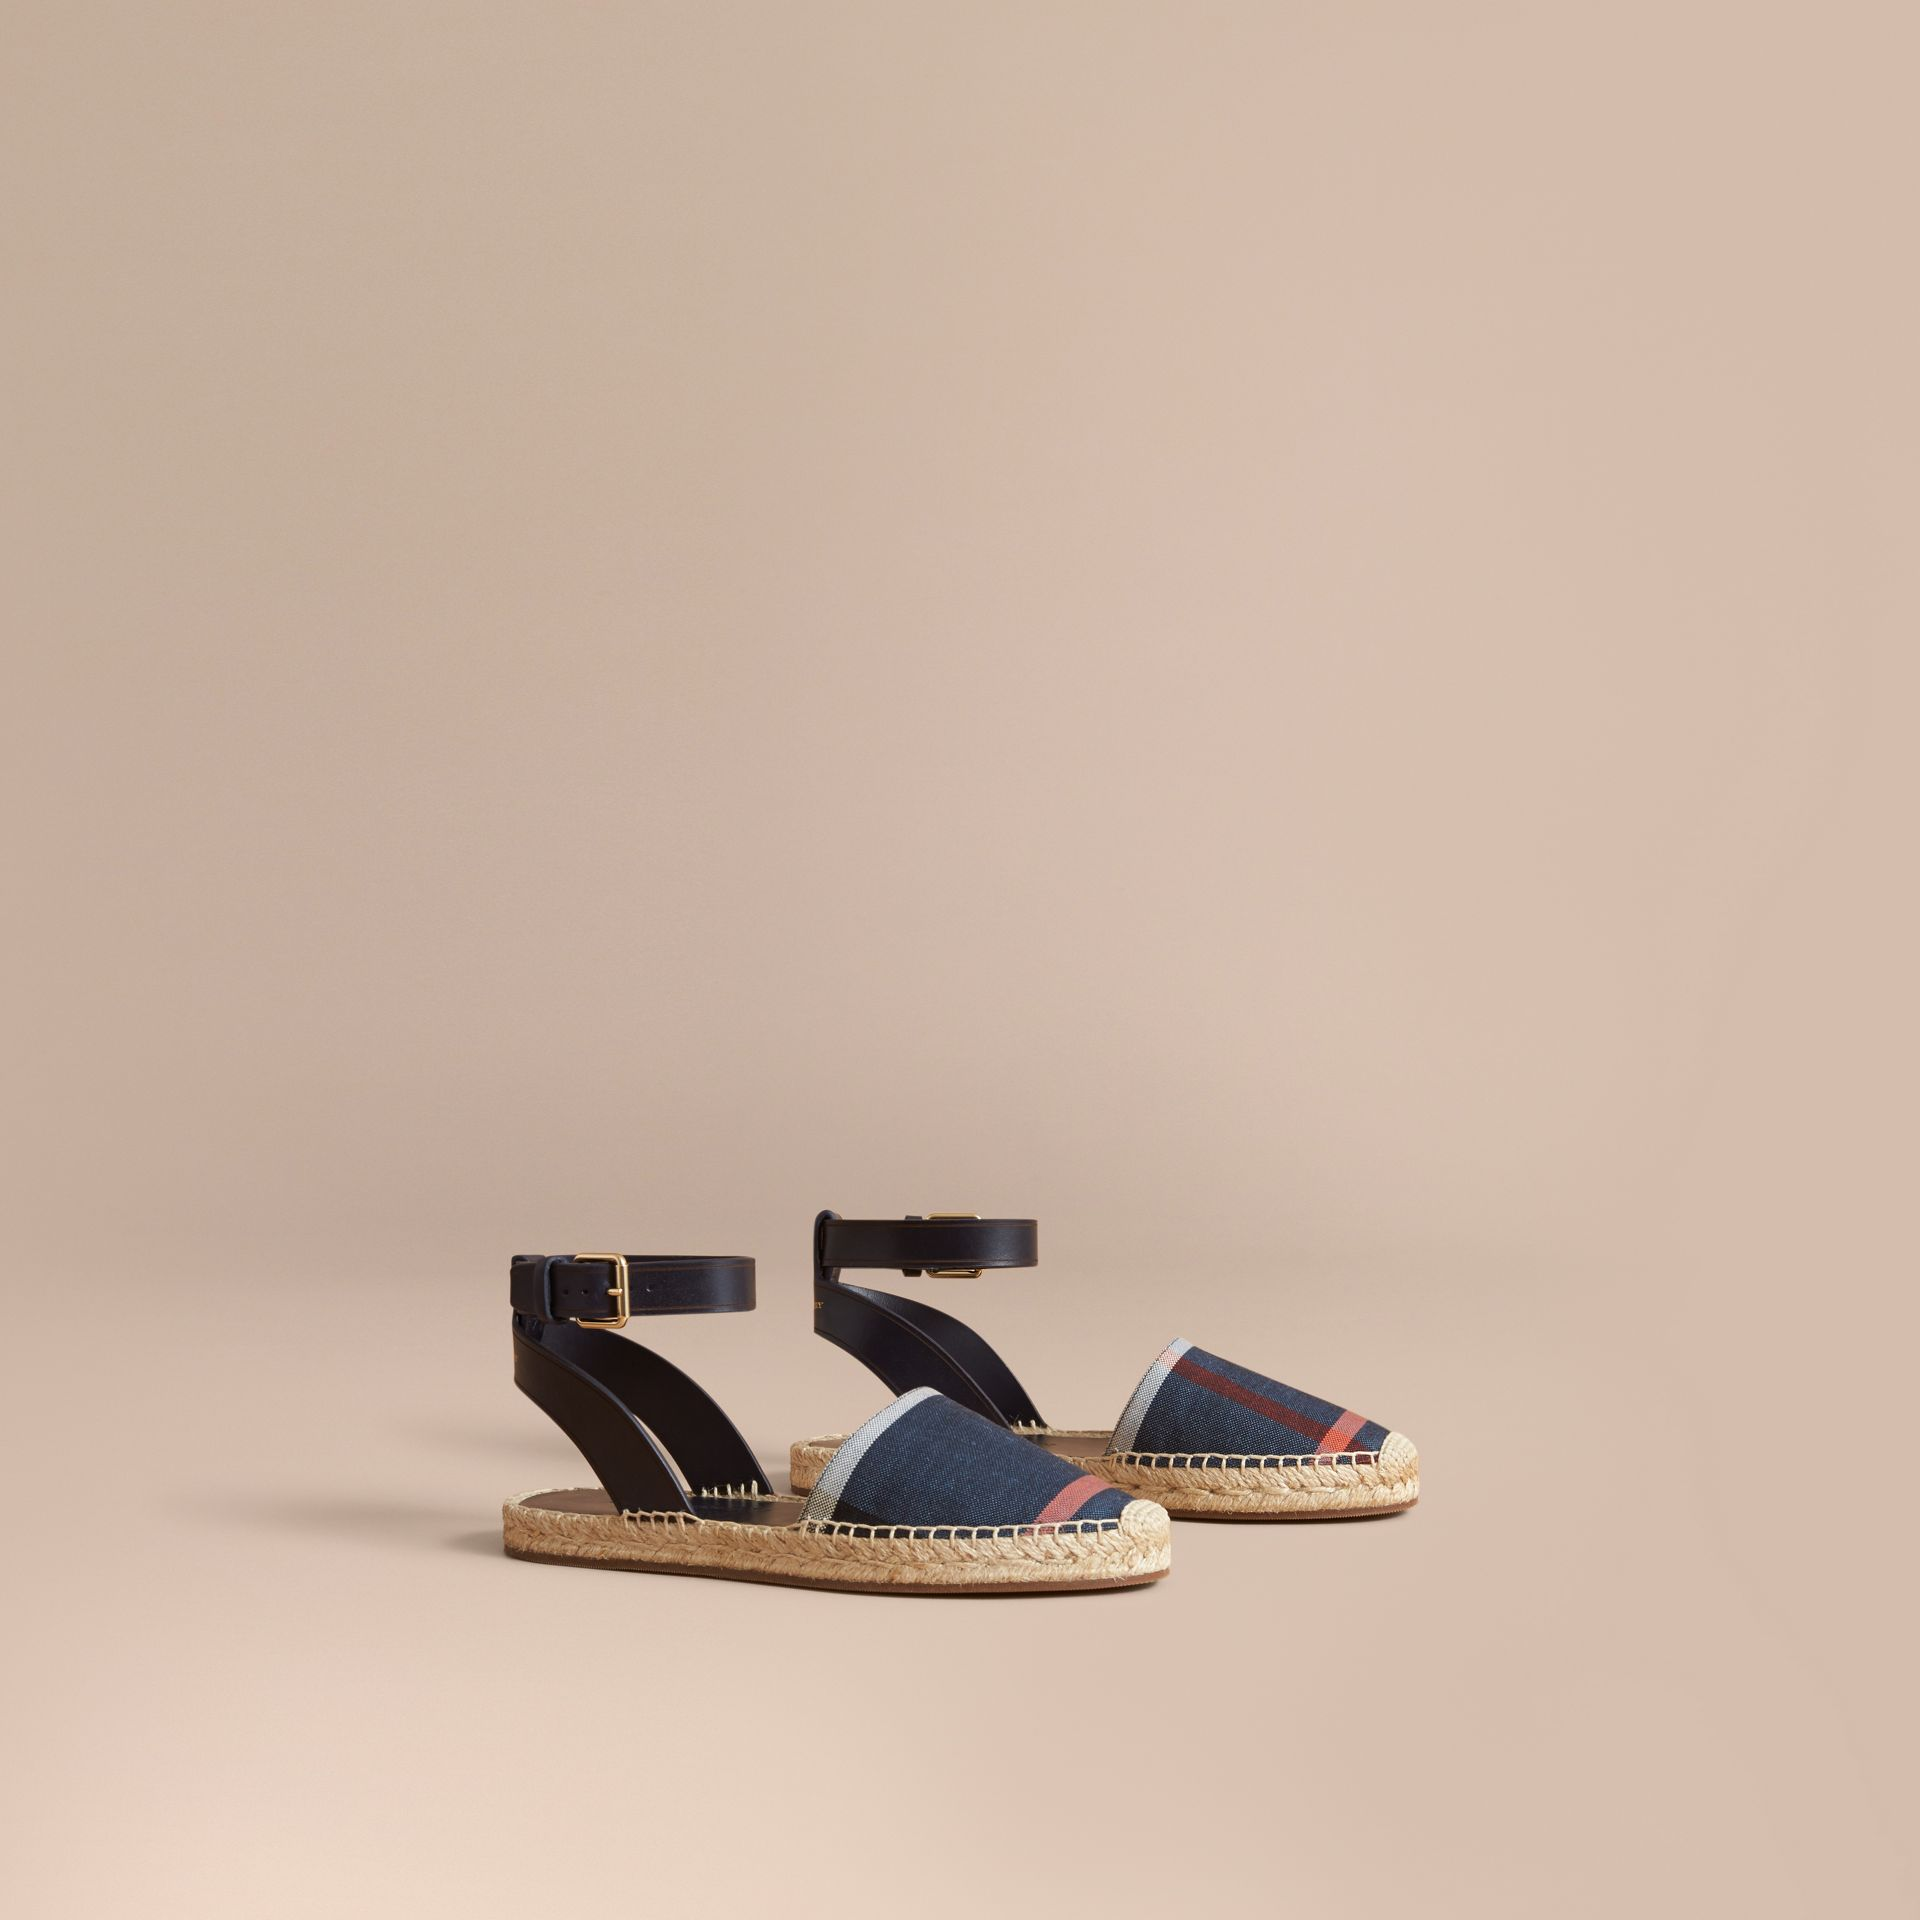 Leather and Check Linen Cotton Espadrille Sandals in Navy - Women | Burberry - gallery image 1